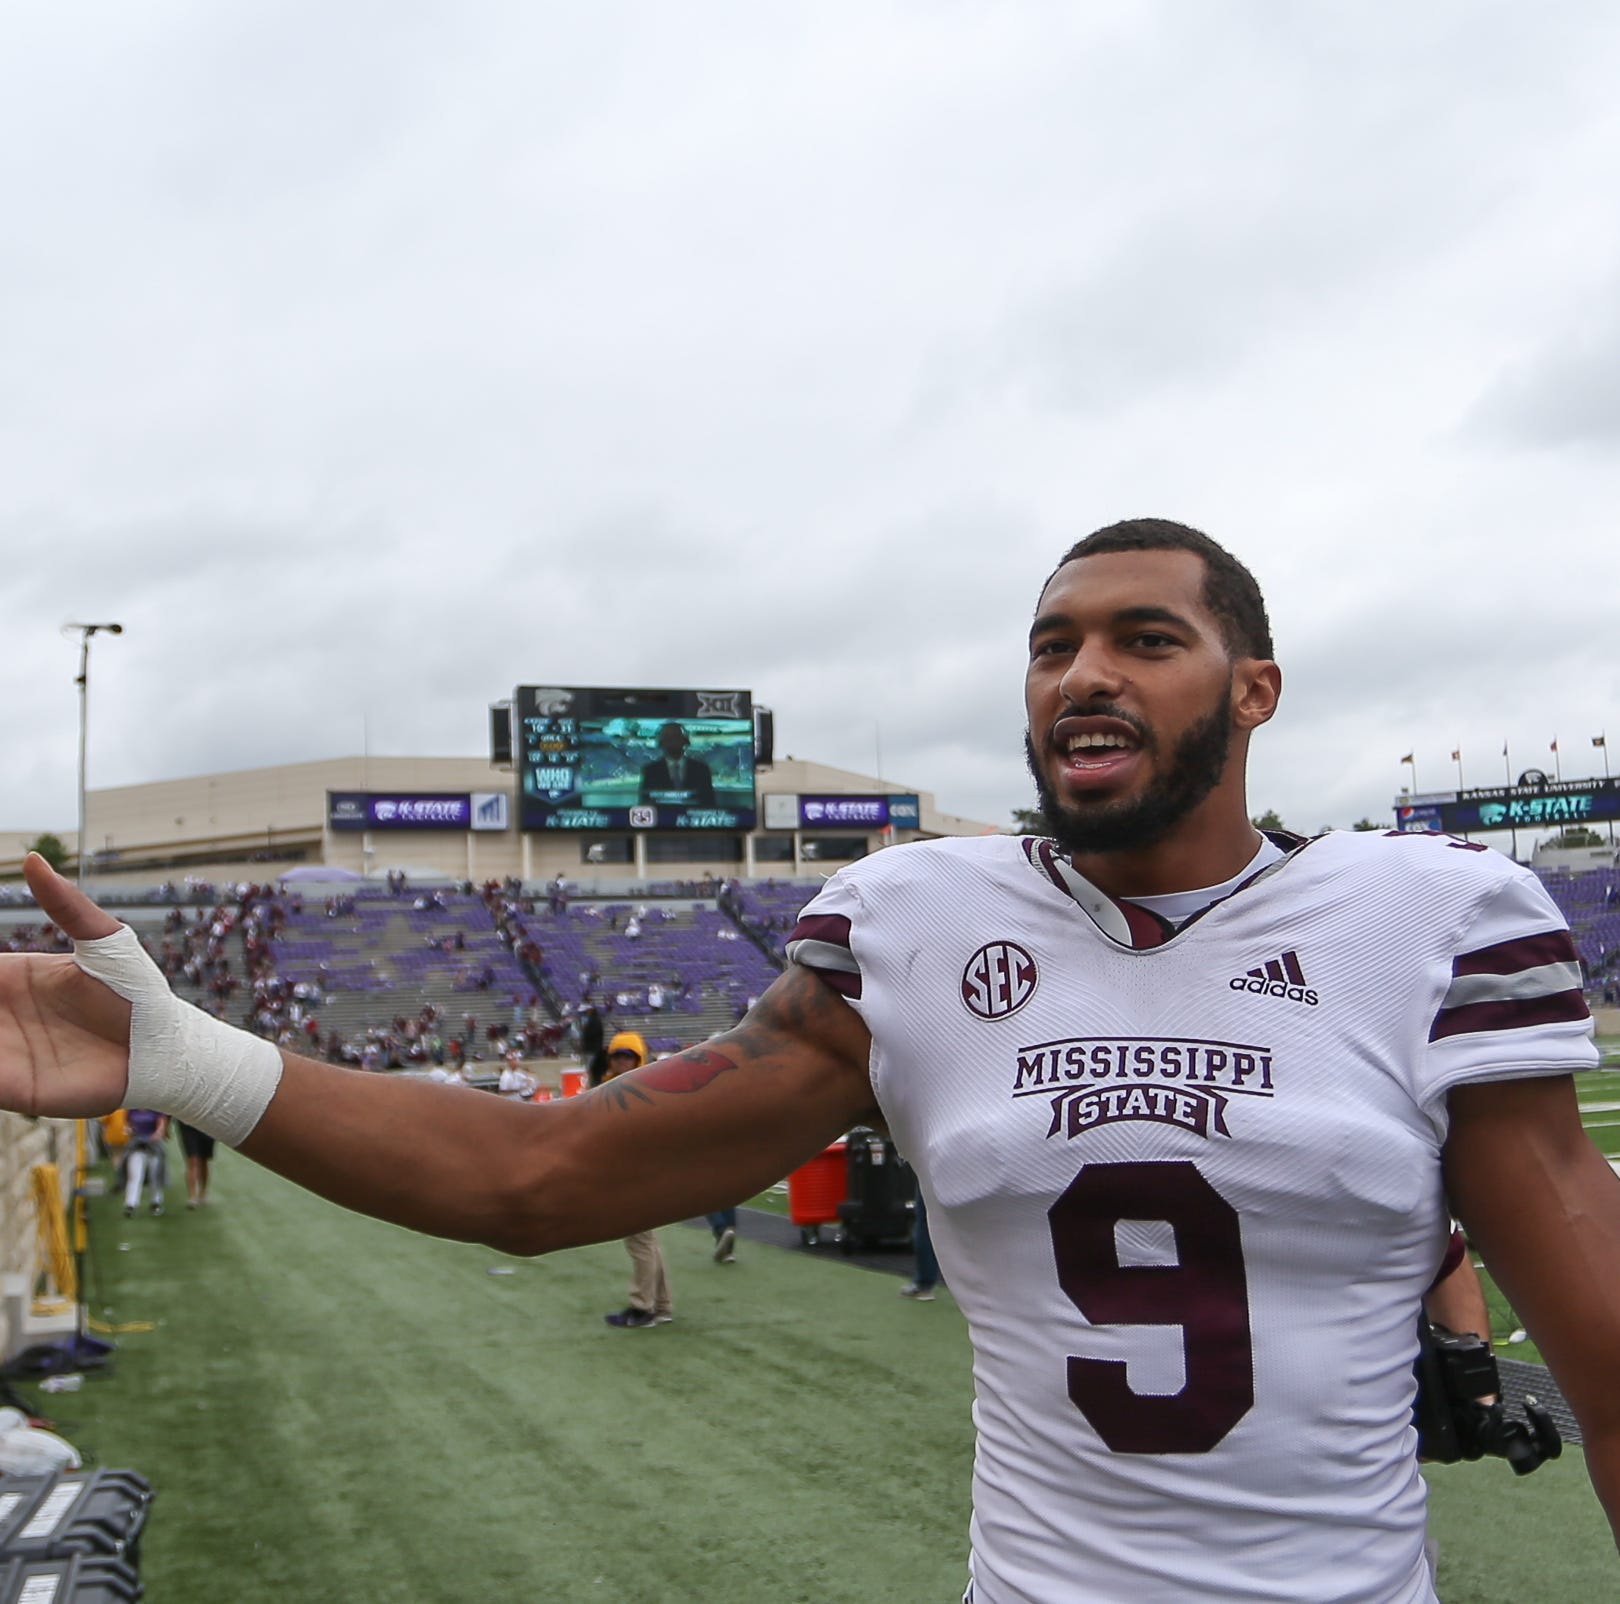 Montez Sweat of Mississippi State picked by Washington Redskins in NFL Draft